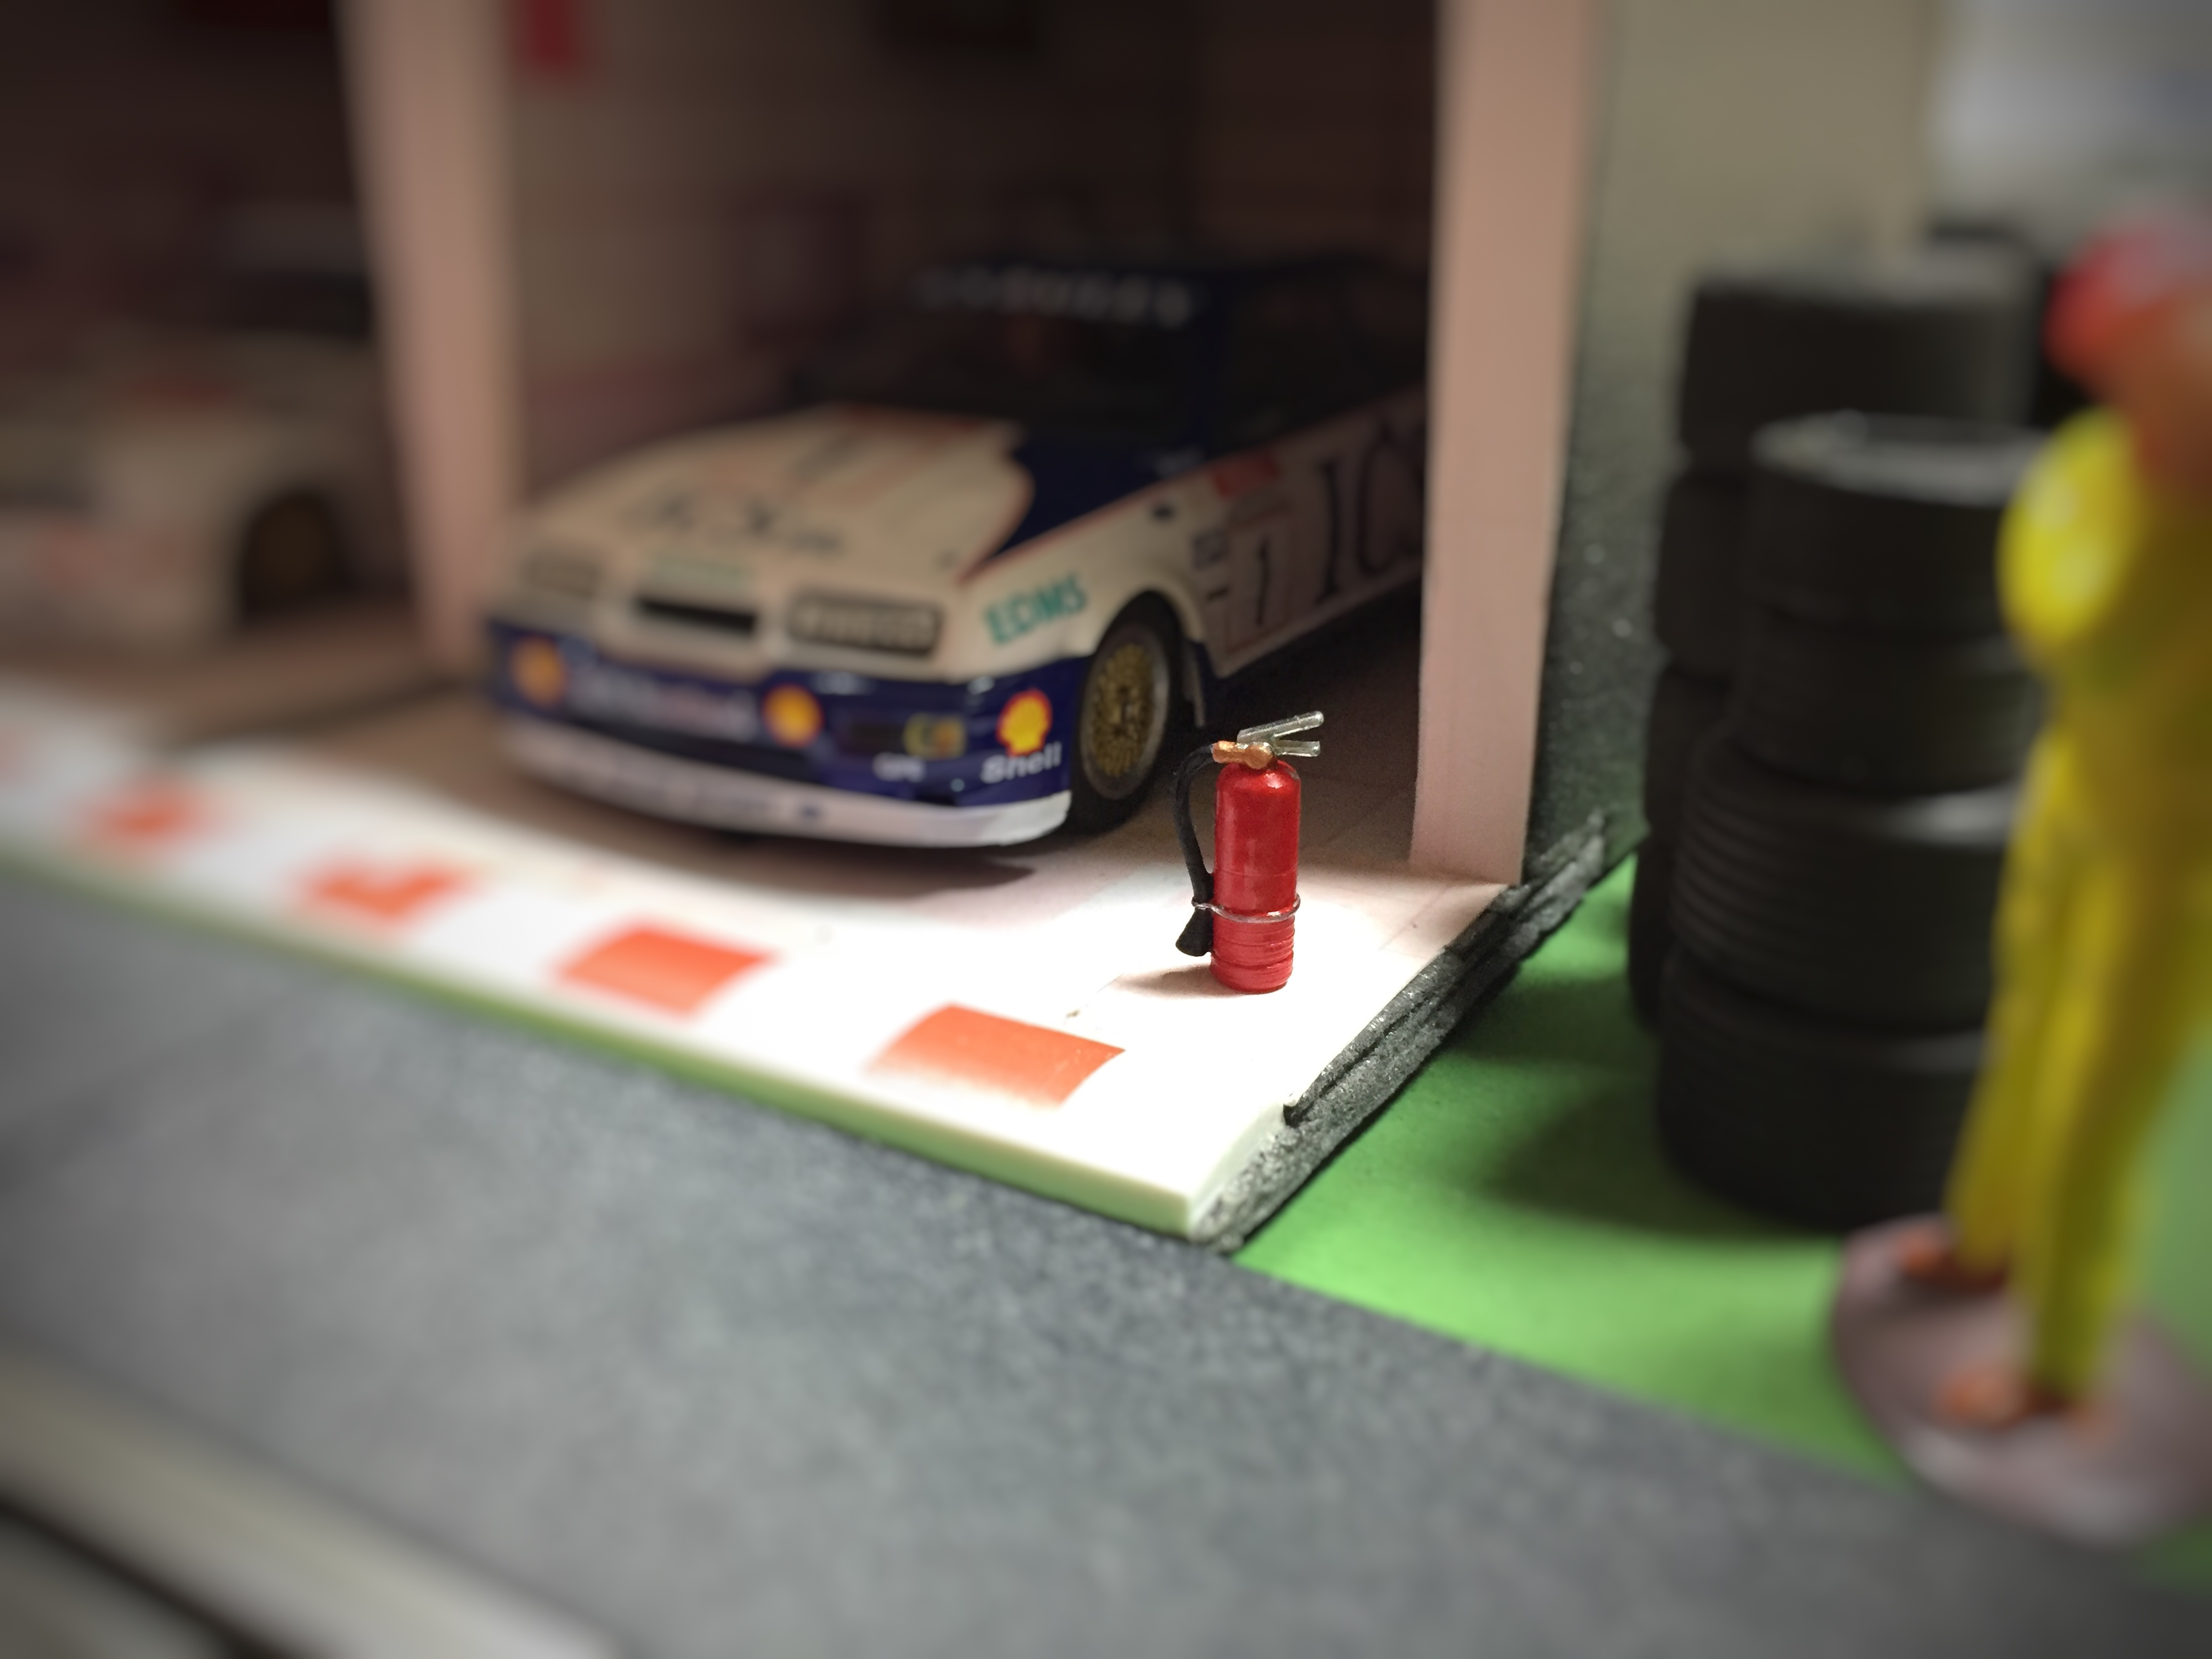 Slot Car Scenics Fire Extinguisher Pk of 6 for scalextric High Detail 1:32 scale